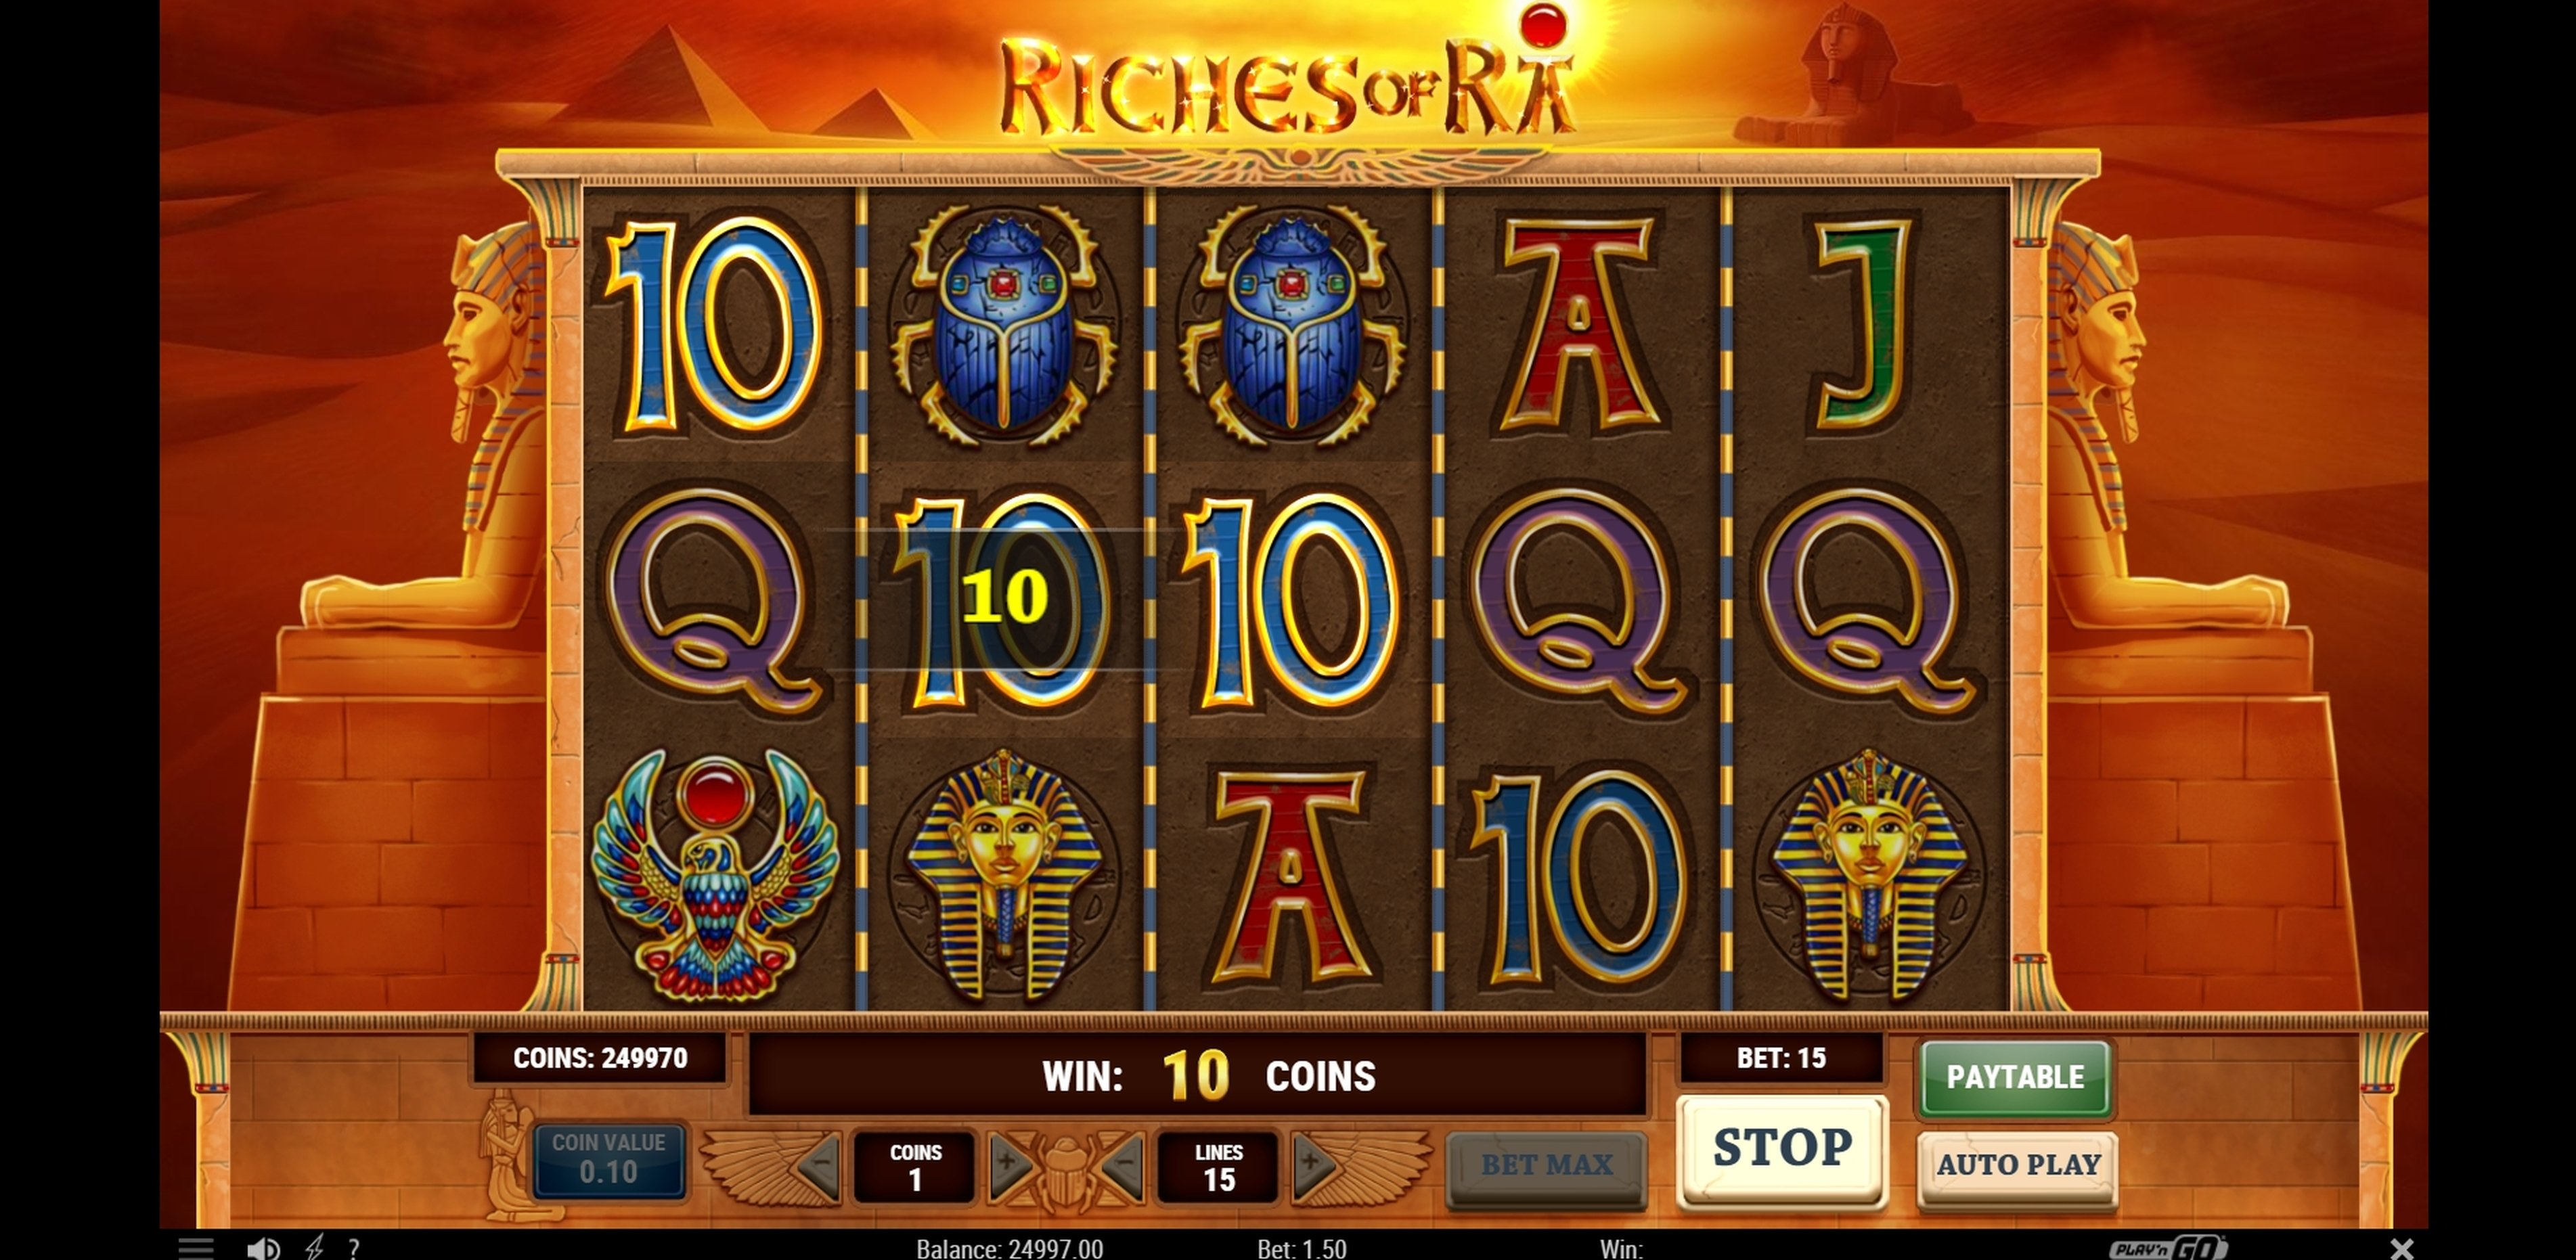 Riches of ra slot machines